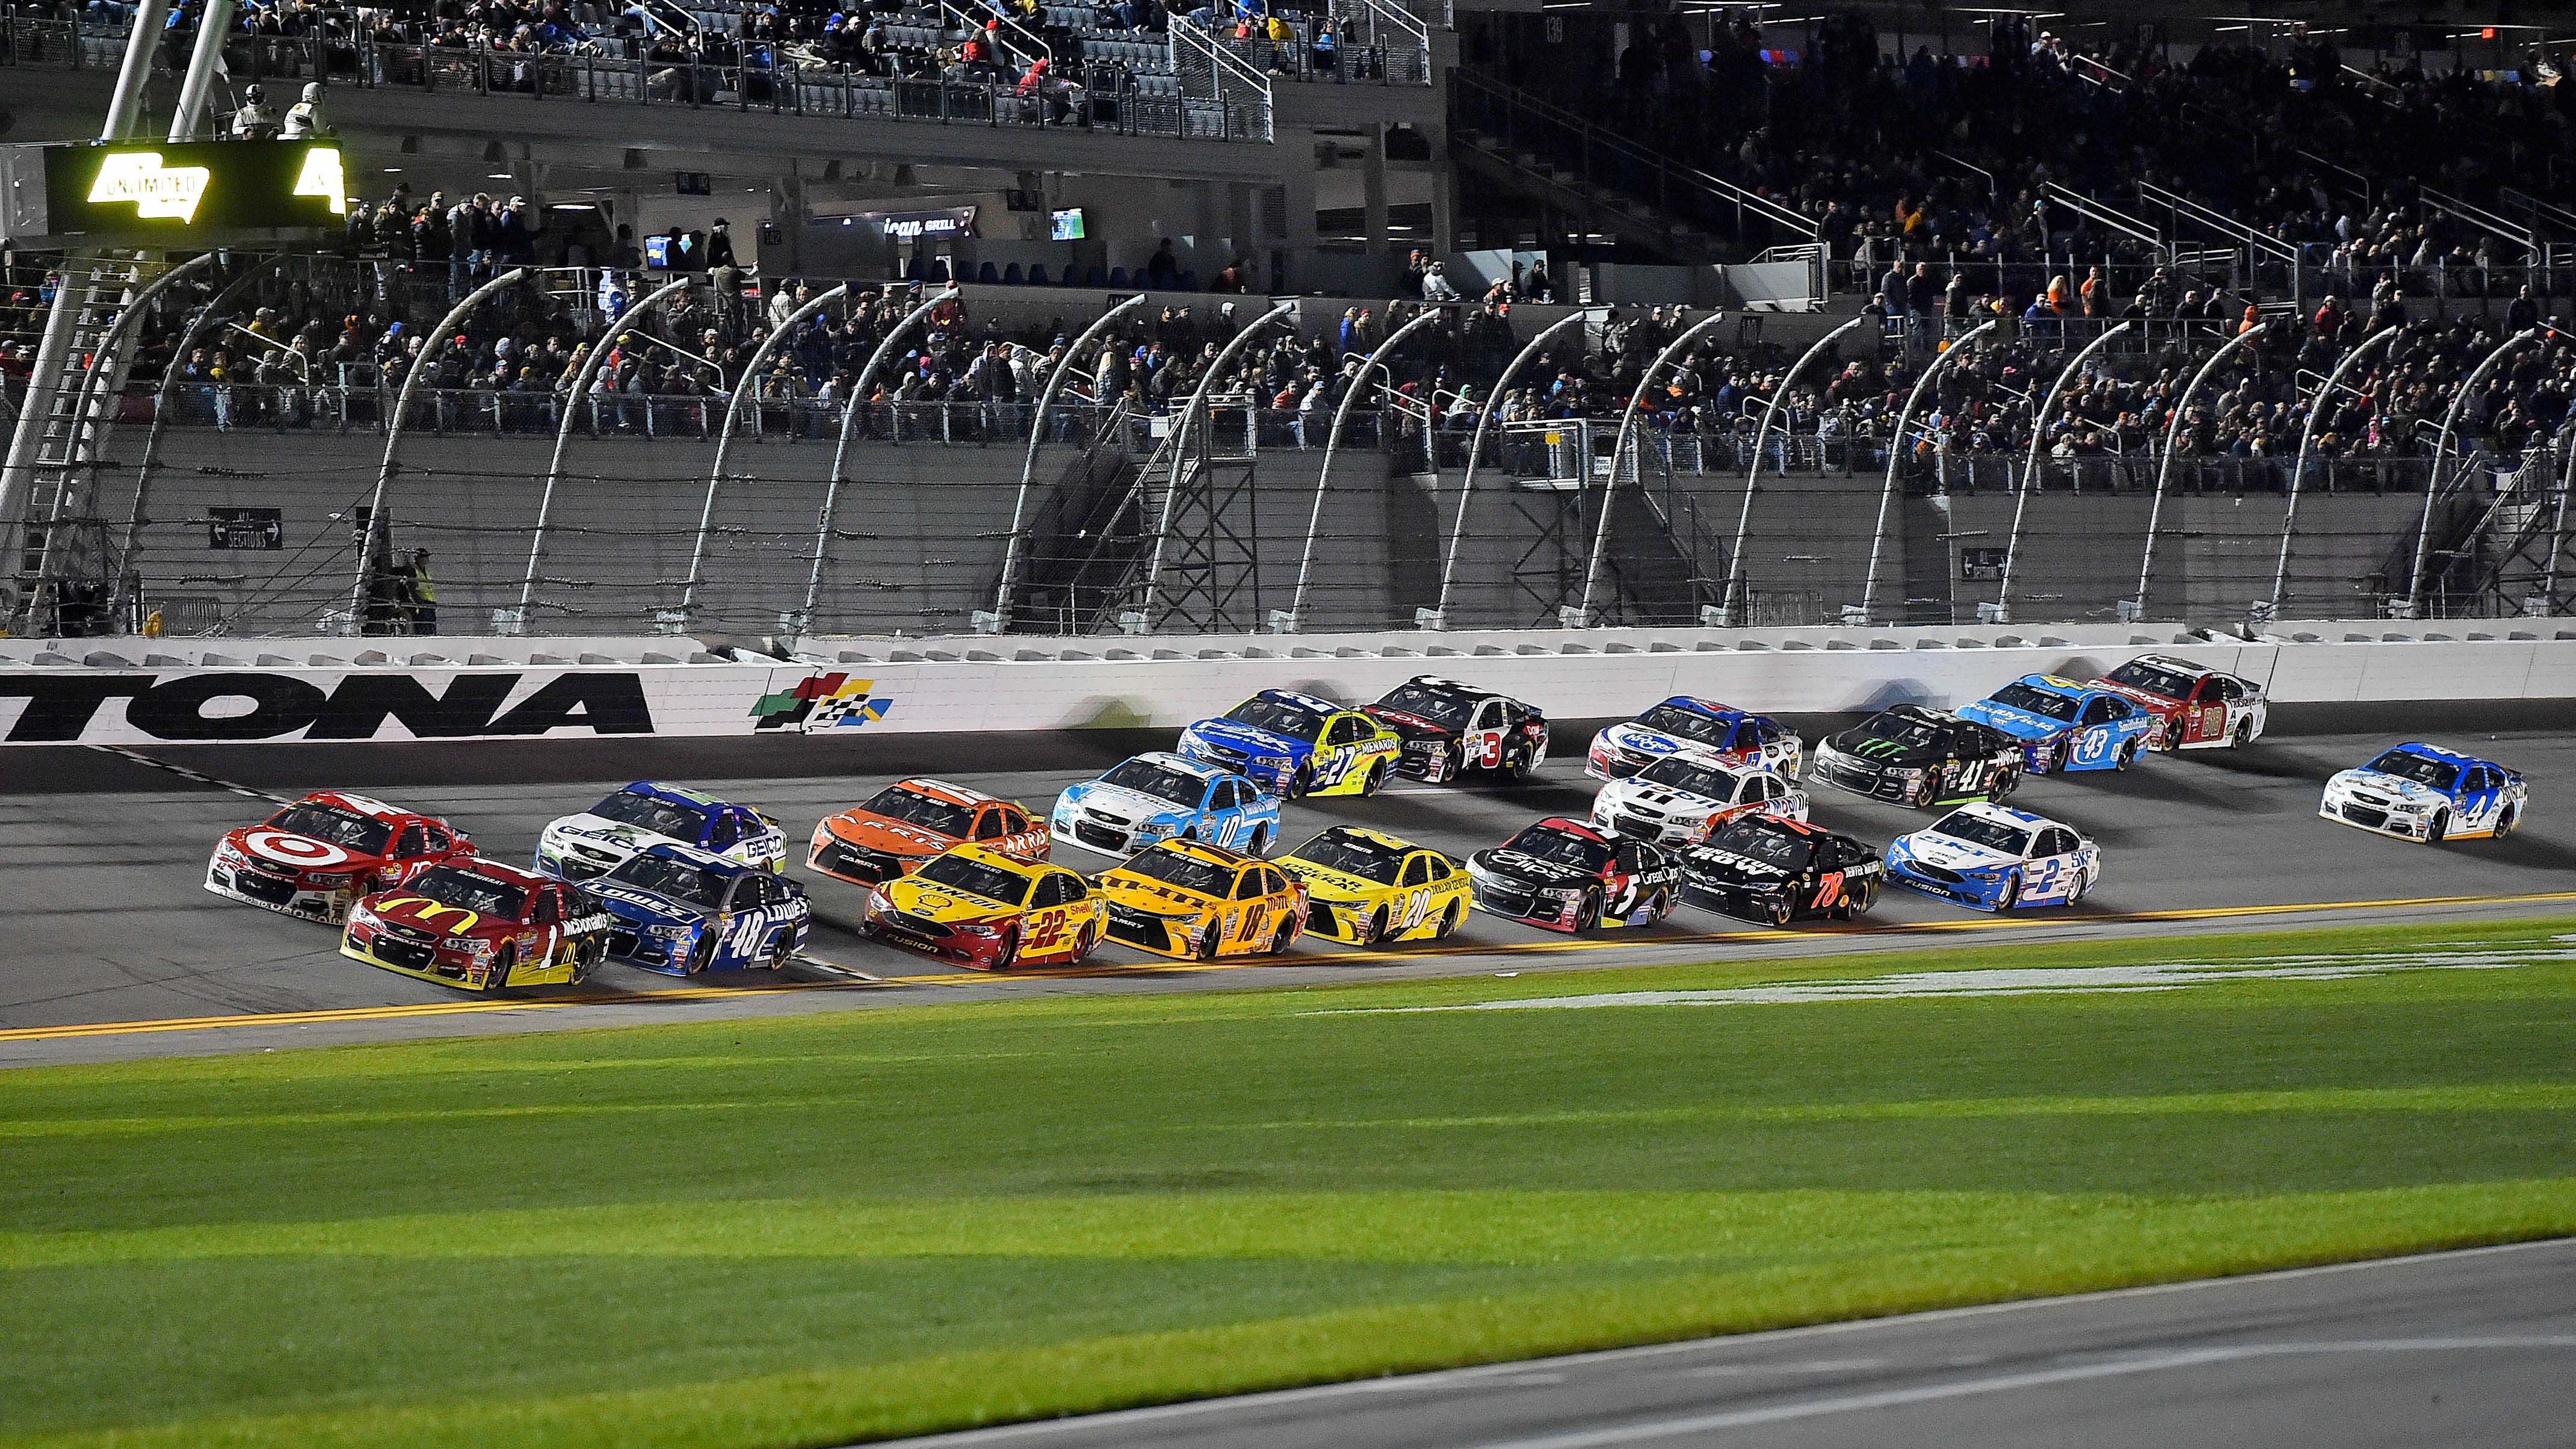 Feb 13, 2016; Daytona Beach, FL, USA; NASCAR Sprint Cup Series driver Jamie Mcmurray (1) and NASCAR Sprint Cup Series driver Kyle Larson (42) lead a pack of cars during The Sprint Unlimited at Daytona International Speedway. Mandatory Credit: Jasen Vinlove-USA TODAY Sports